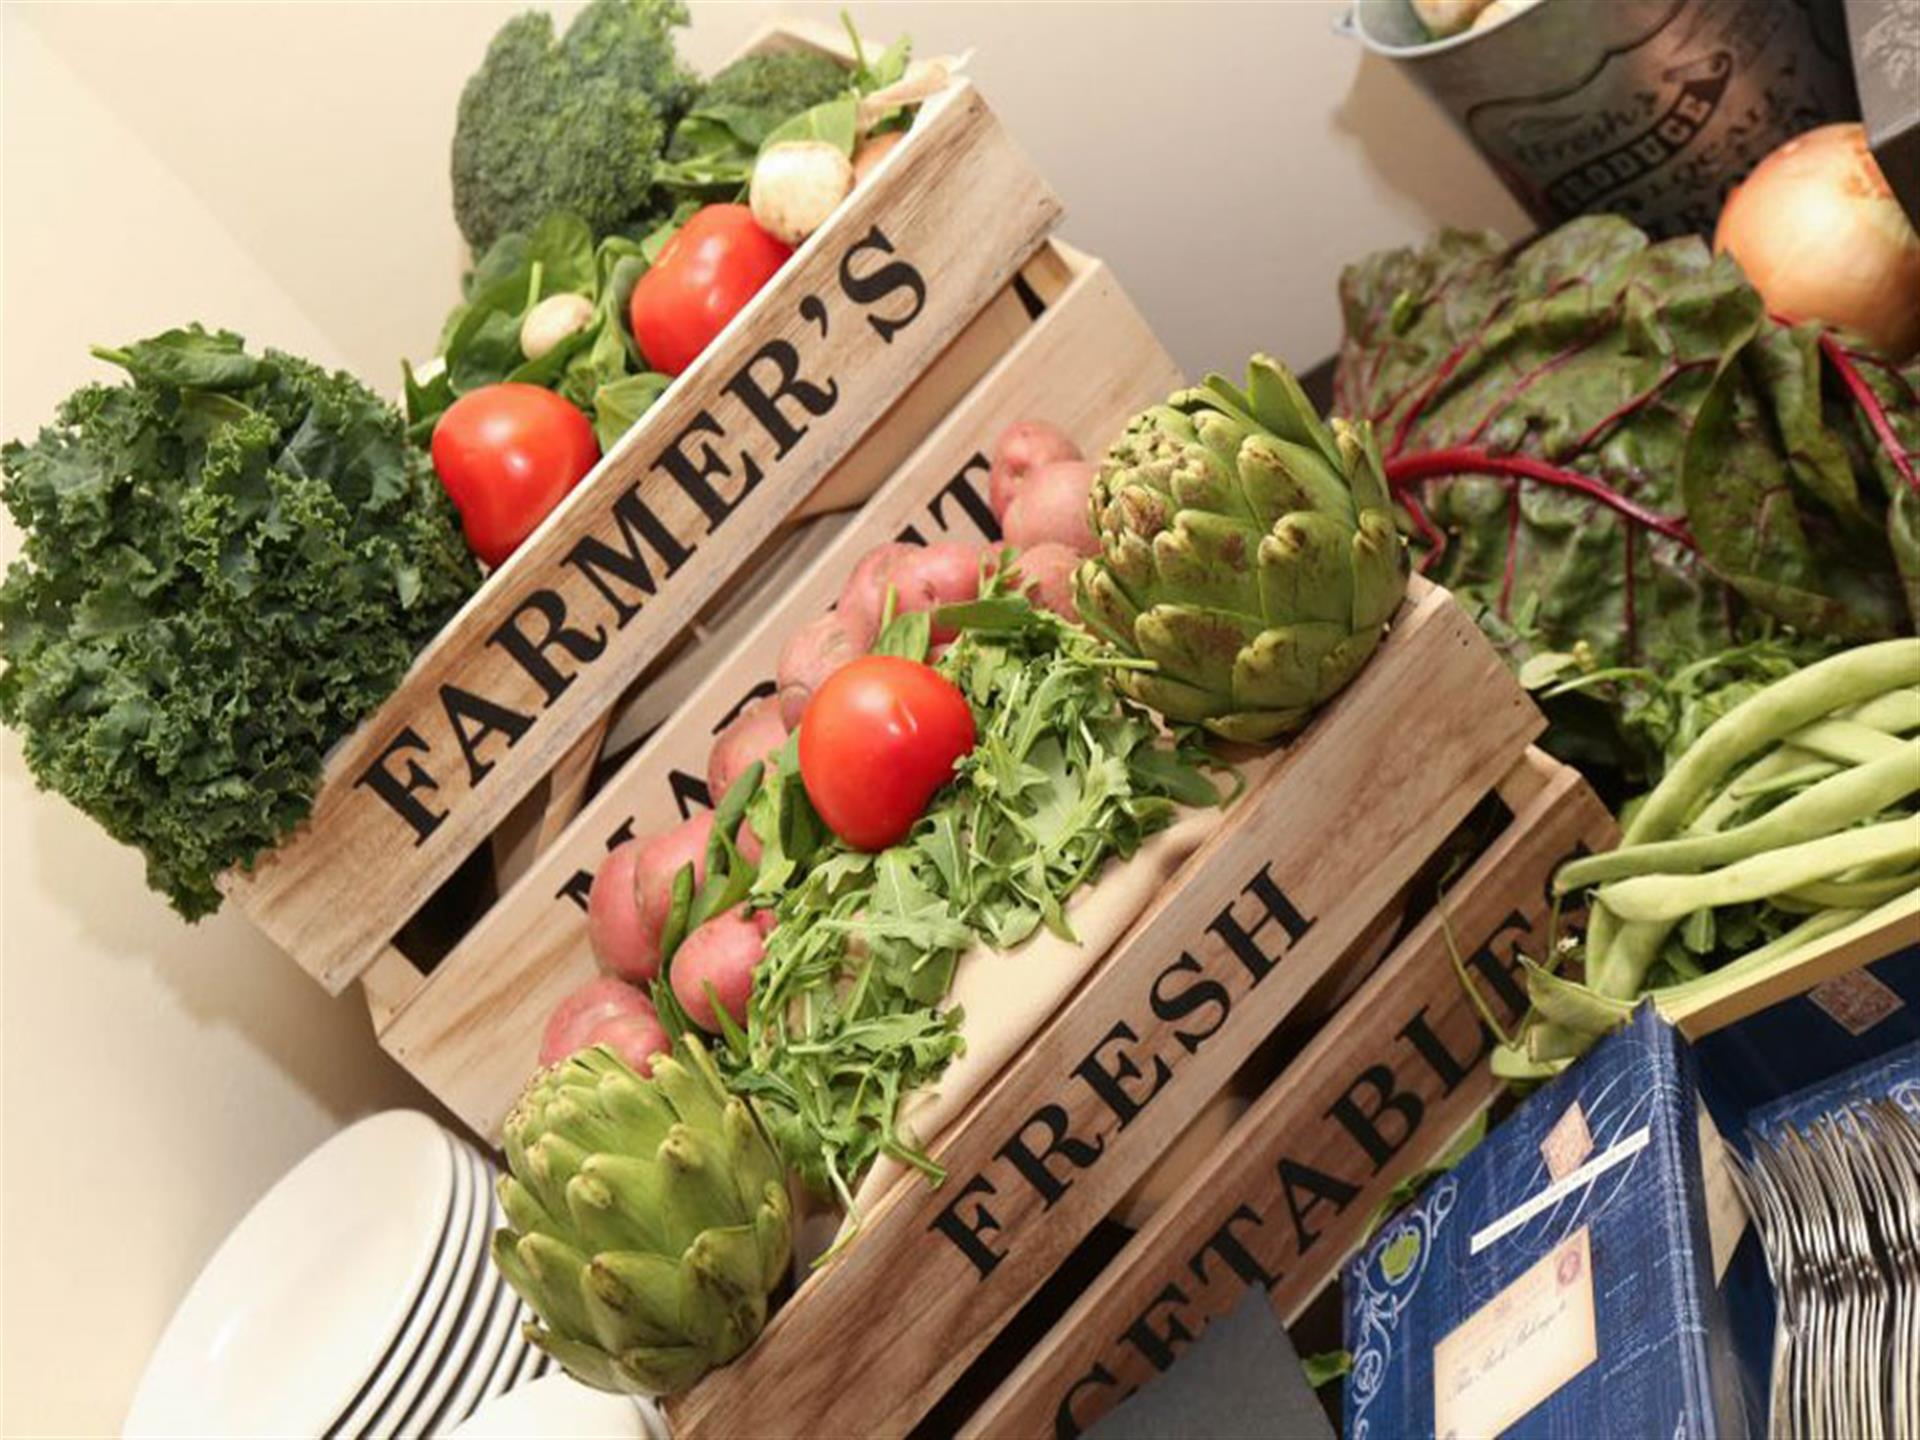 tablescape set with vegetabkes and farmer's market crates